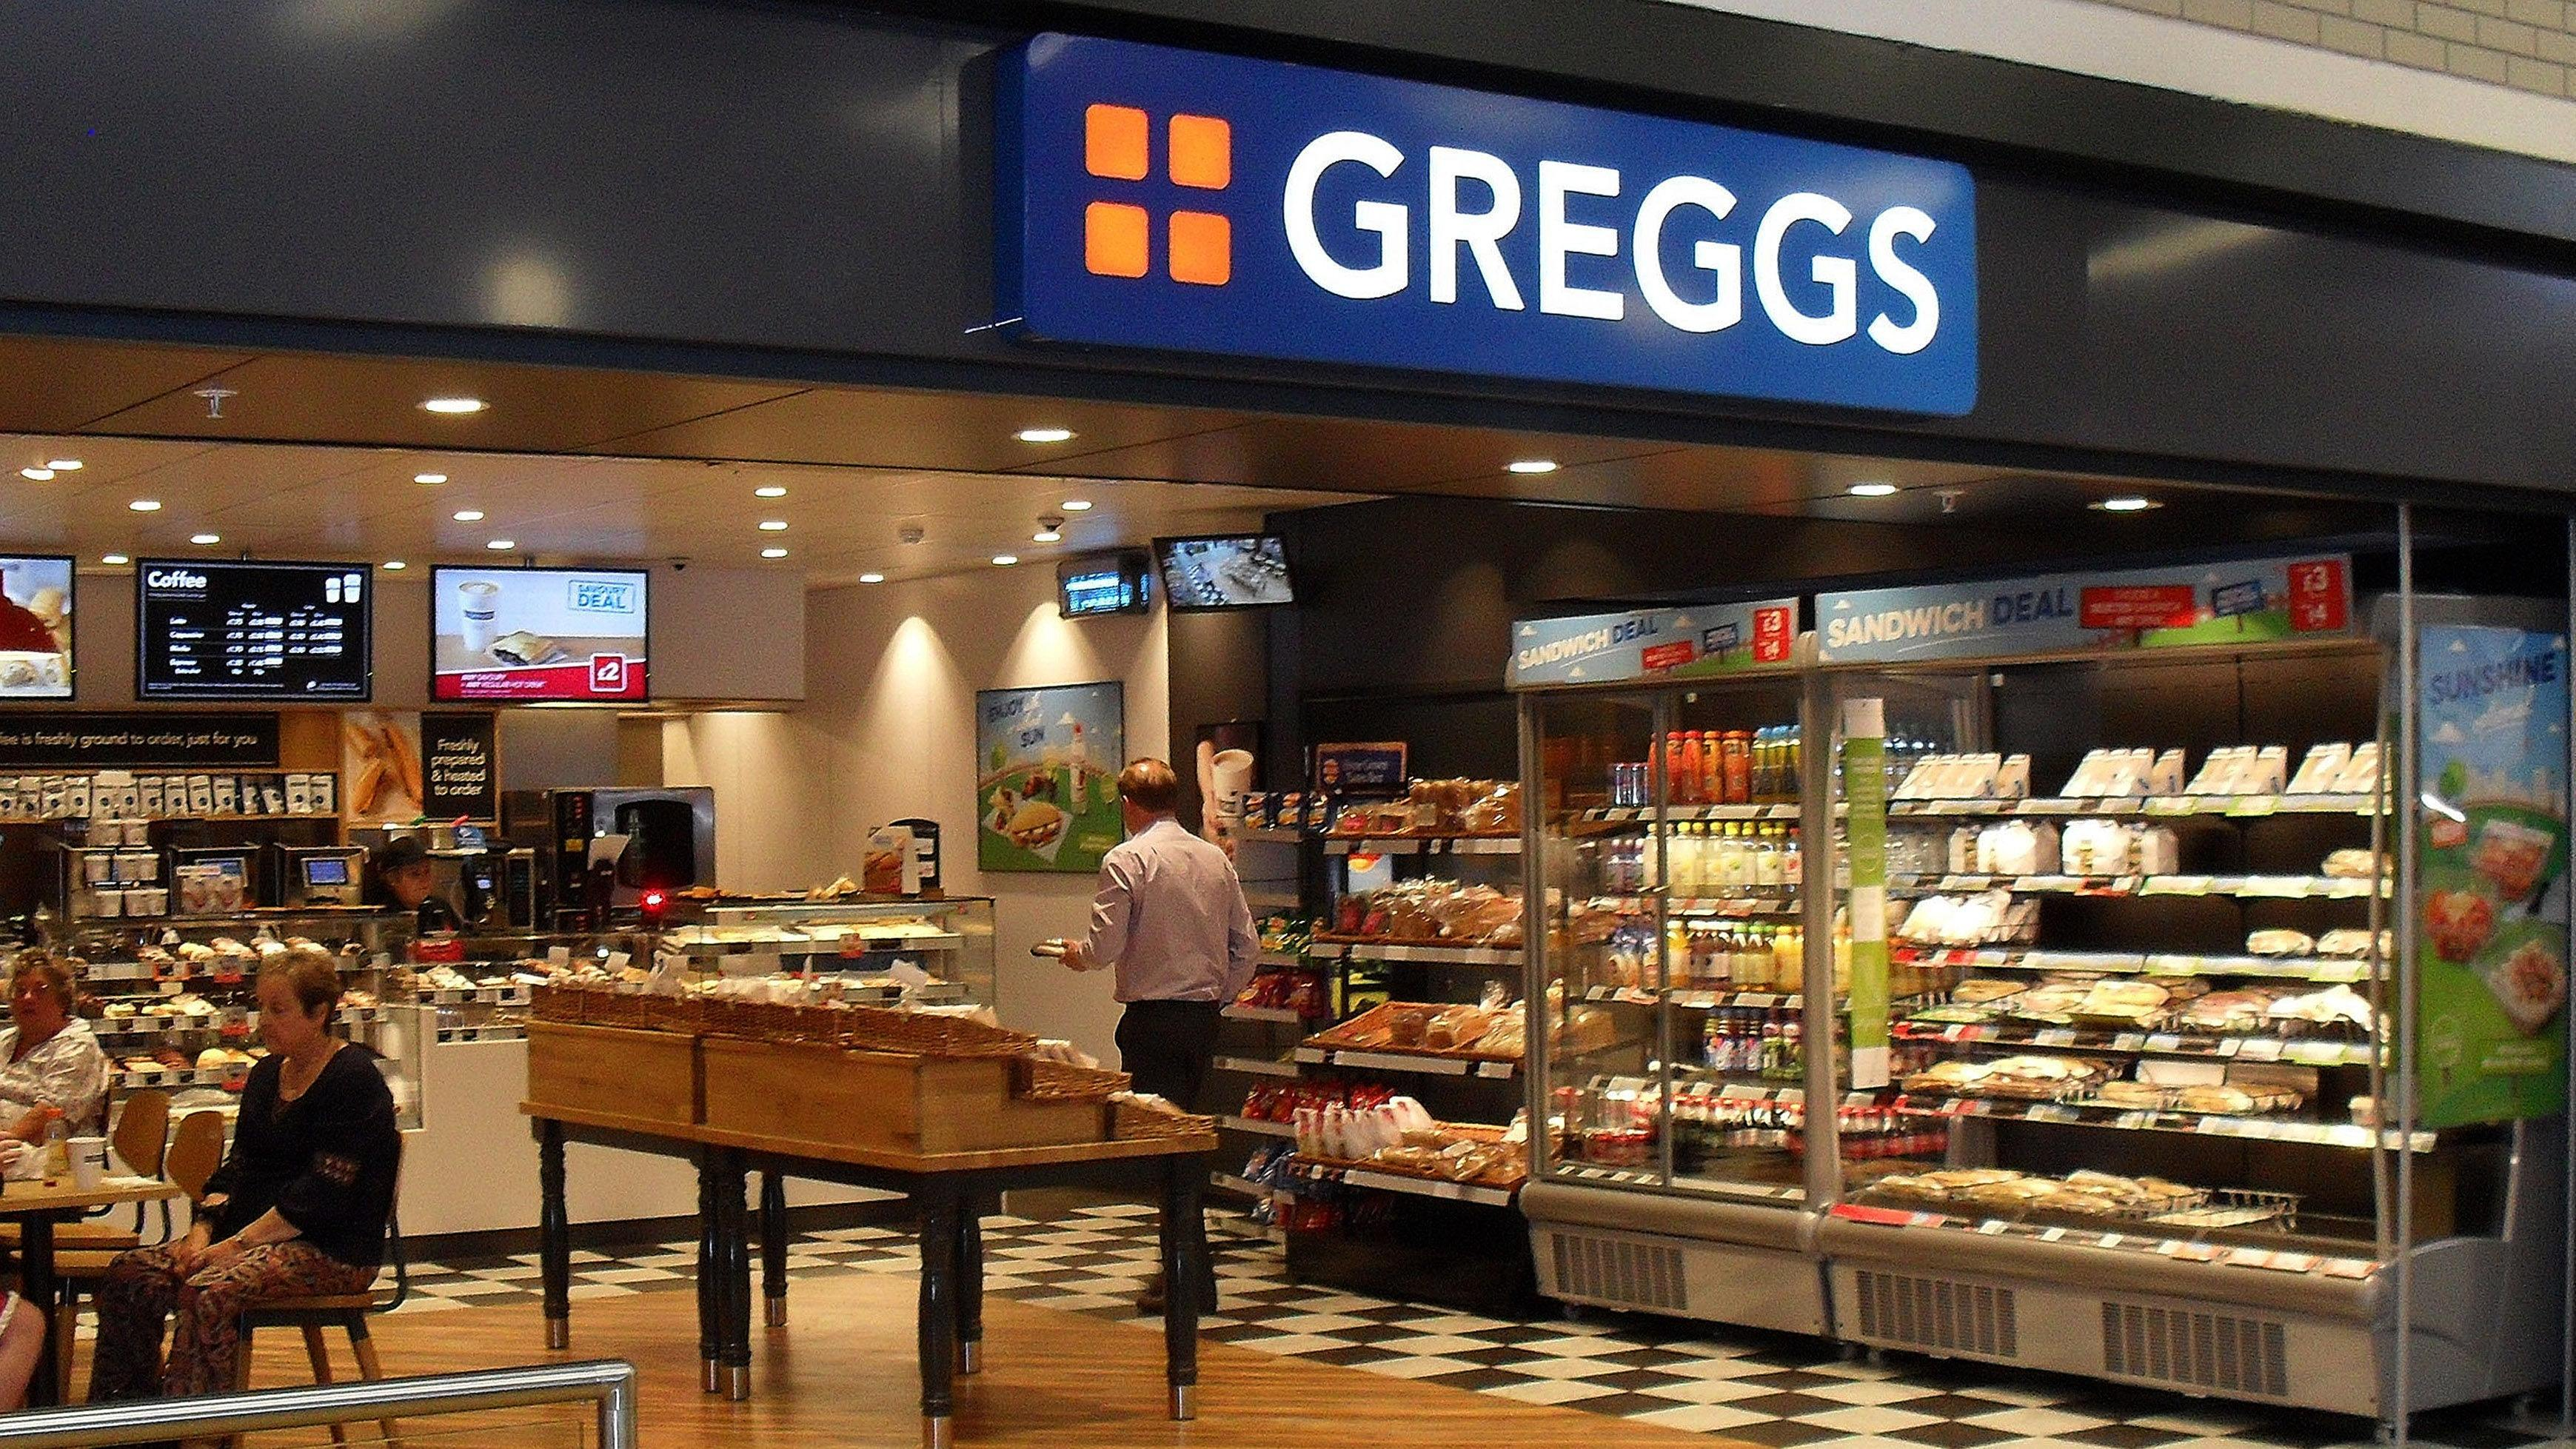 Food Recall 2019: Greggs and Morrisons recall a list of food